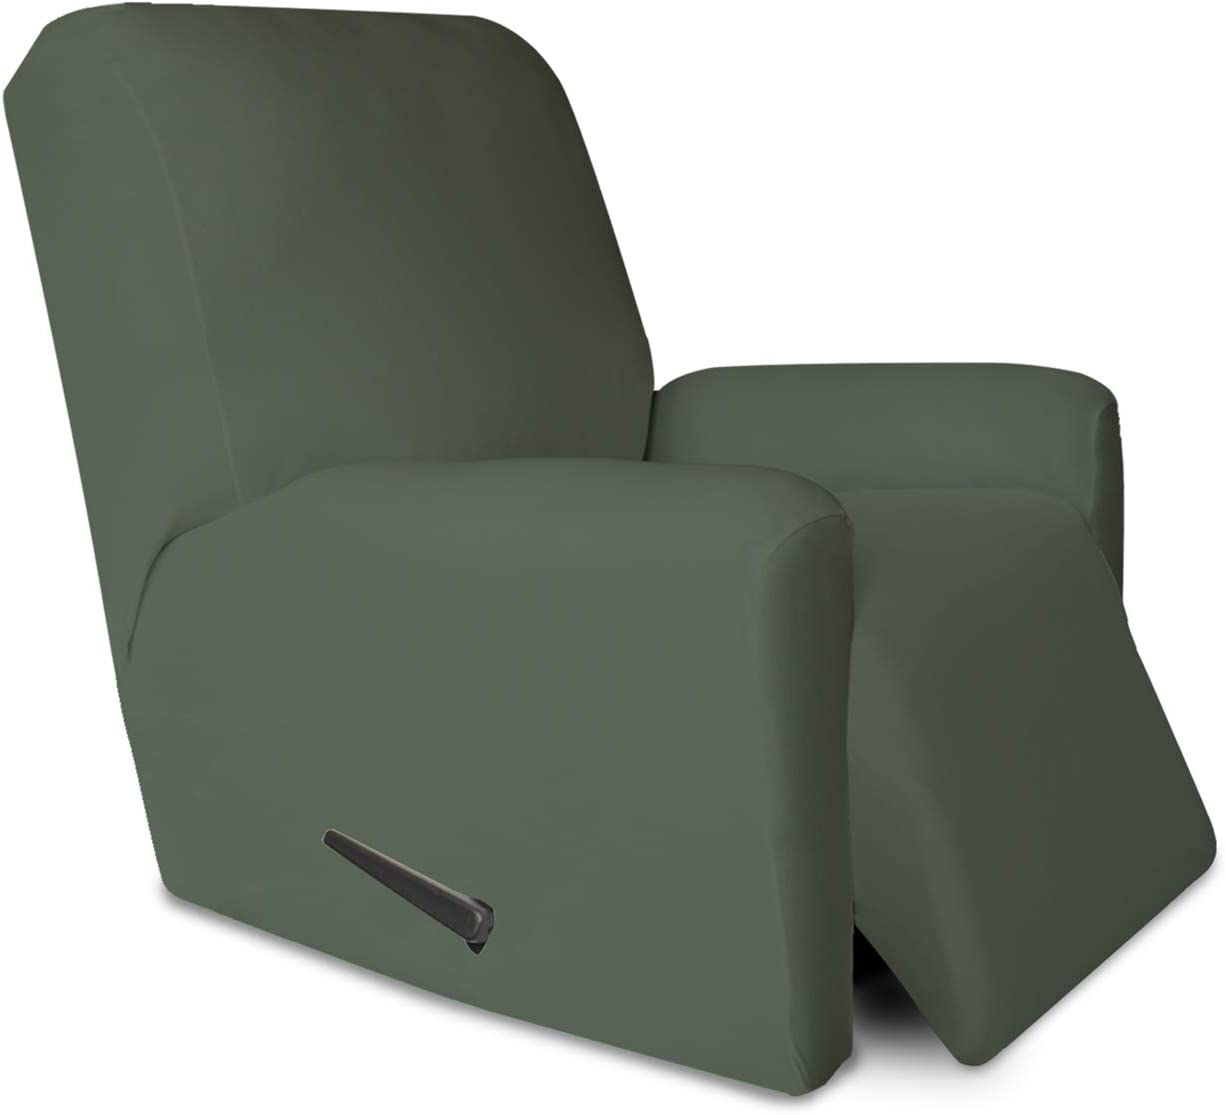 PureFit Super Stretch Chair Sofa Slipcover with Pocket – Spandex Non Slip Soft Couch Sofa Cover, Washable Furniture Protector with Elastic Bottom for Kids, Pets (Recliner, Grayish Green)